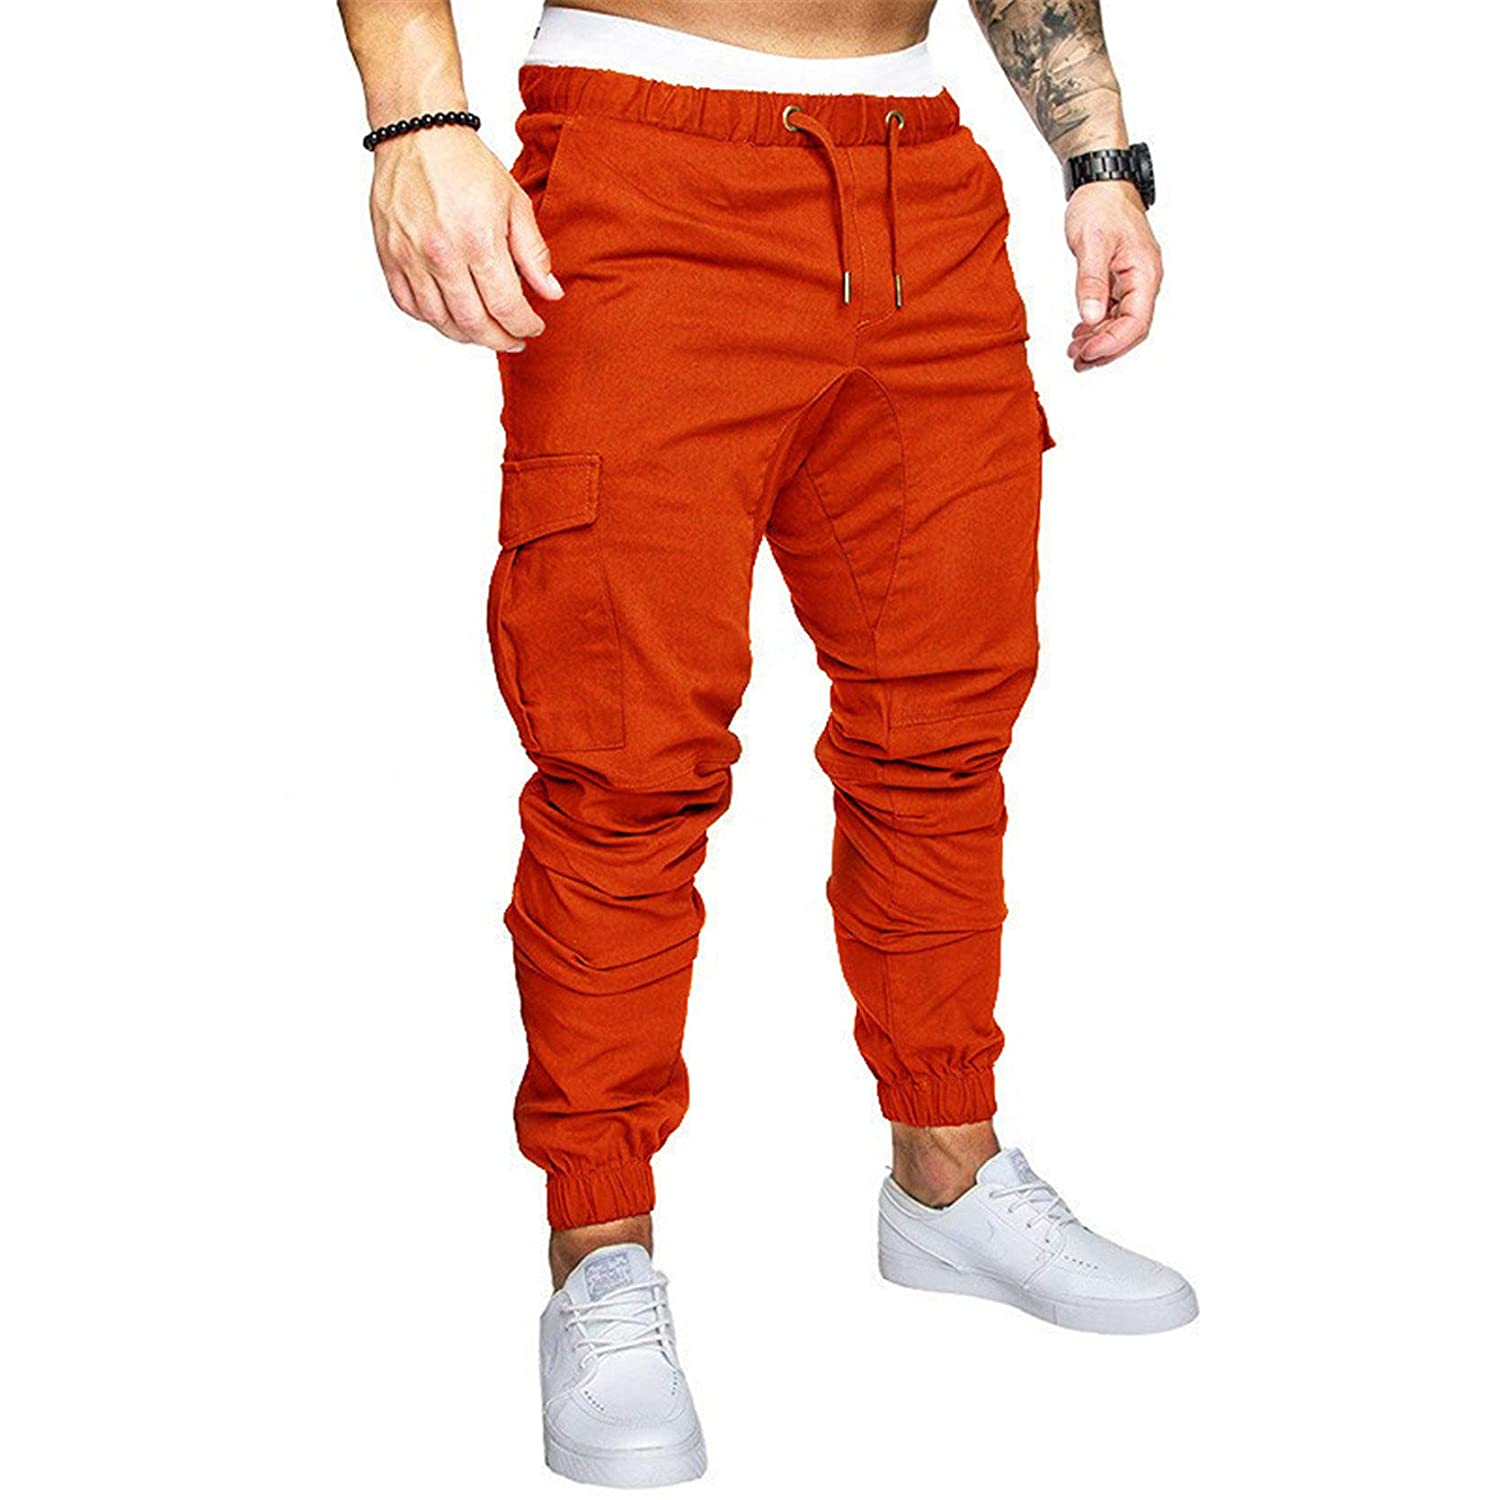 Men's Chino Trousers Drawstring Solid Challenge the National products lowest price of Japan ☆ C Jogging Pant Sweat